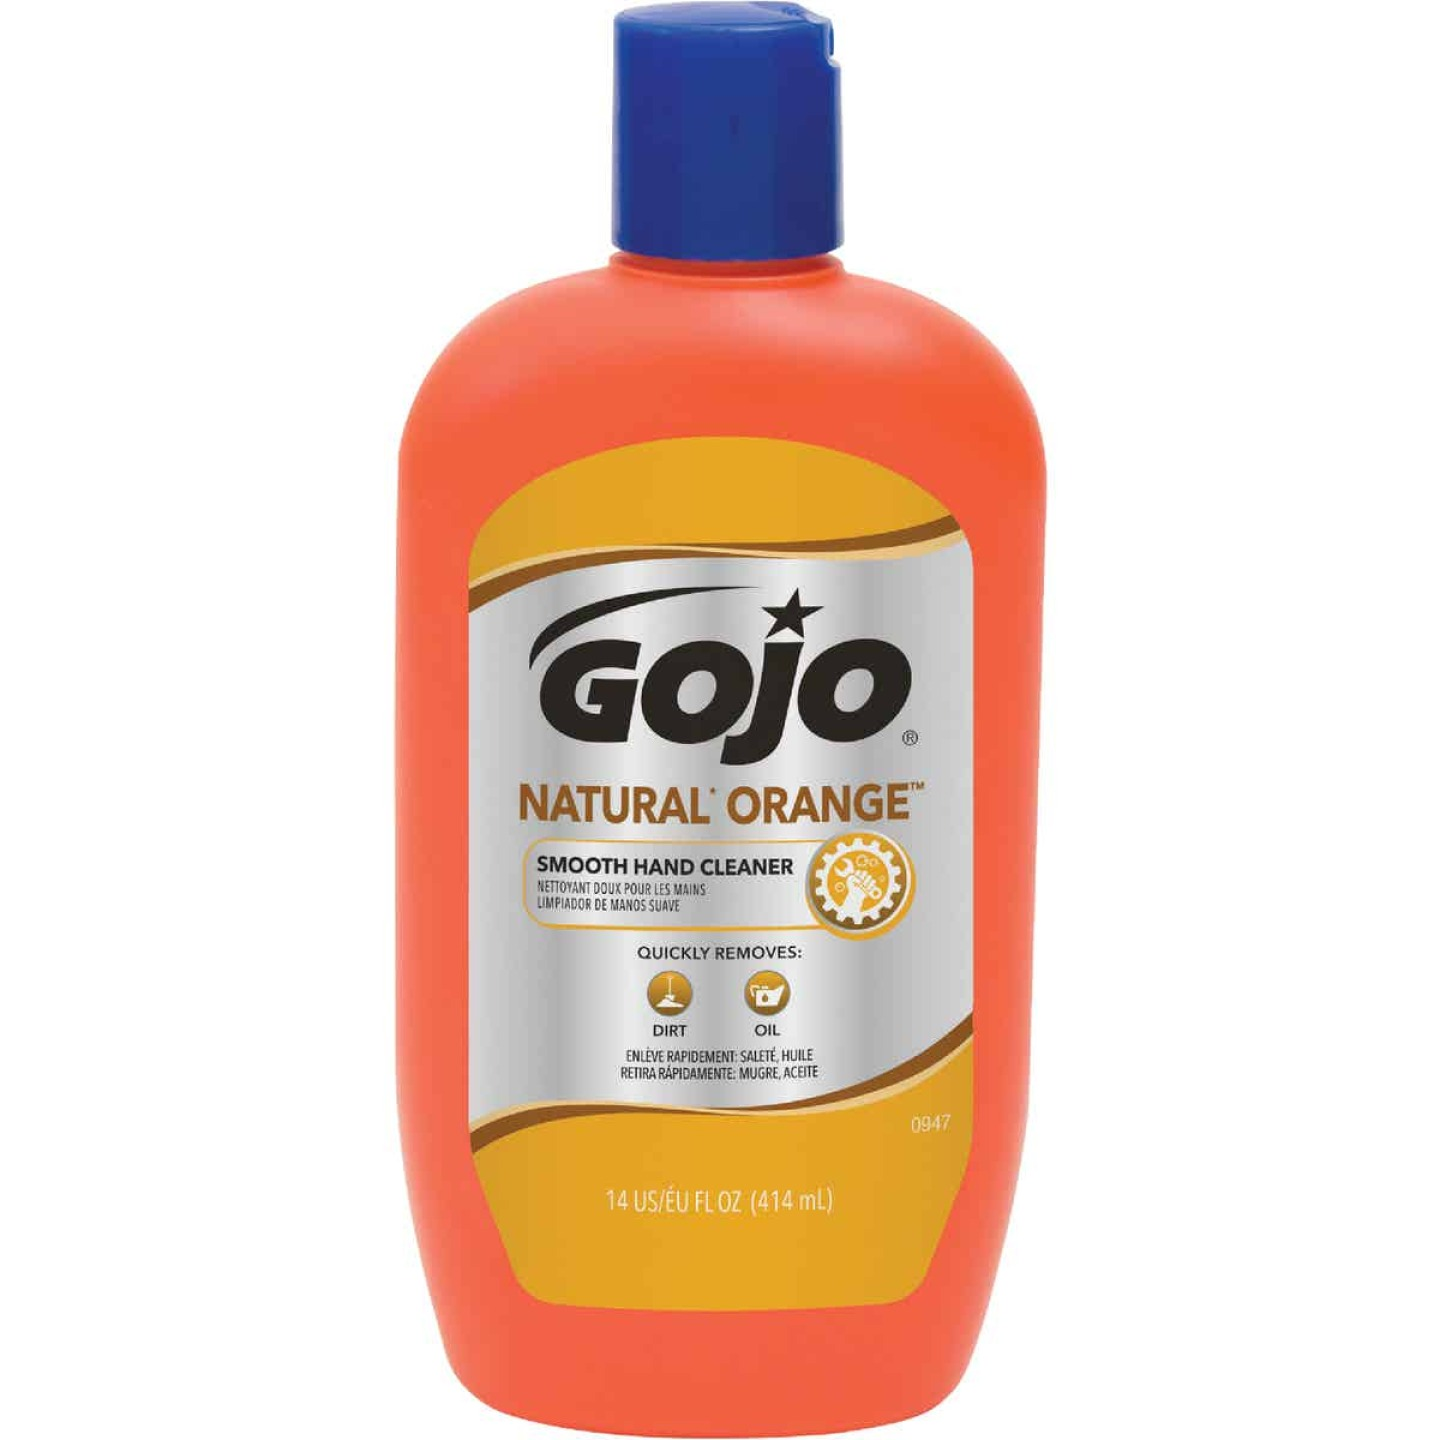 GOJO Natural Orange 14 Oz. Smooth Hand Cleaner Image 1